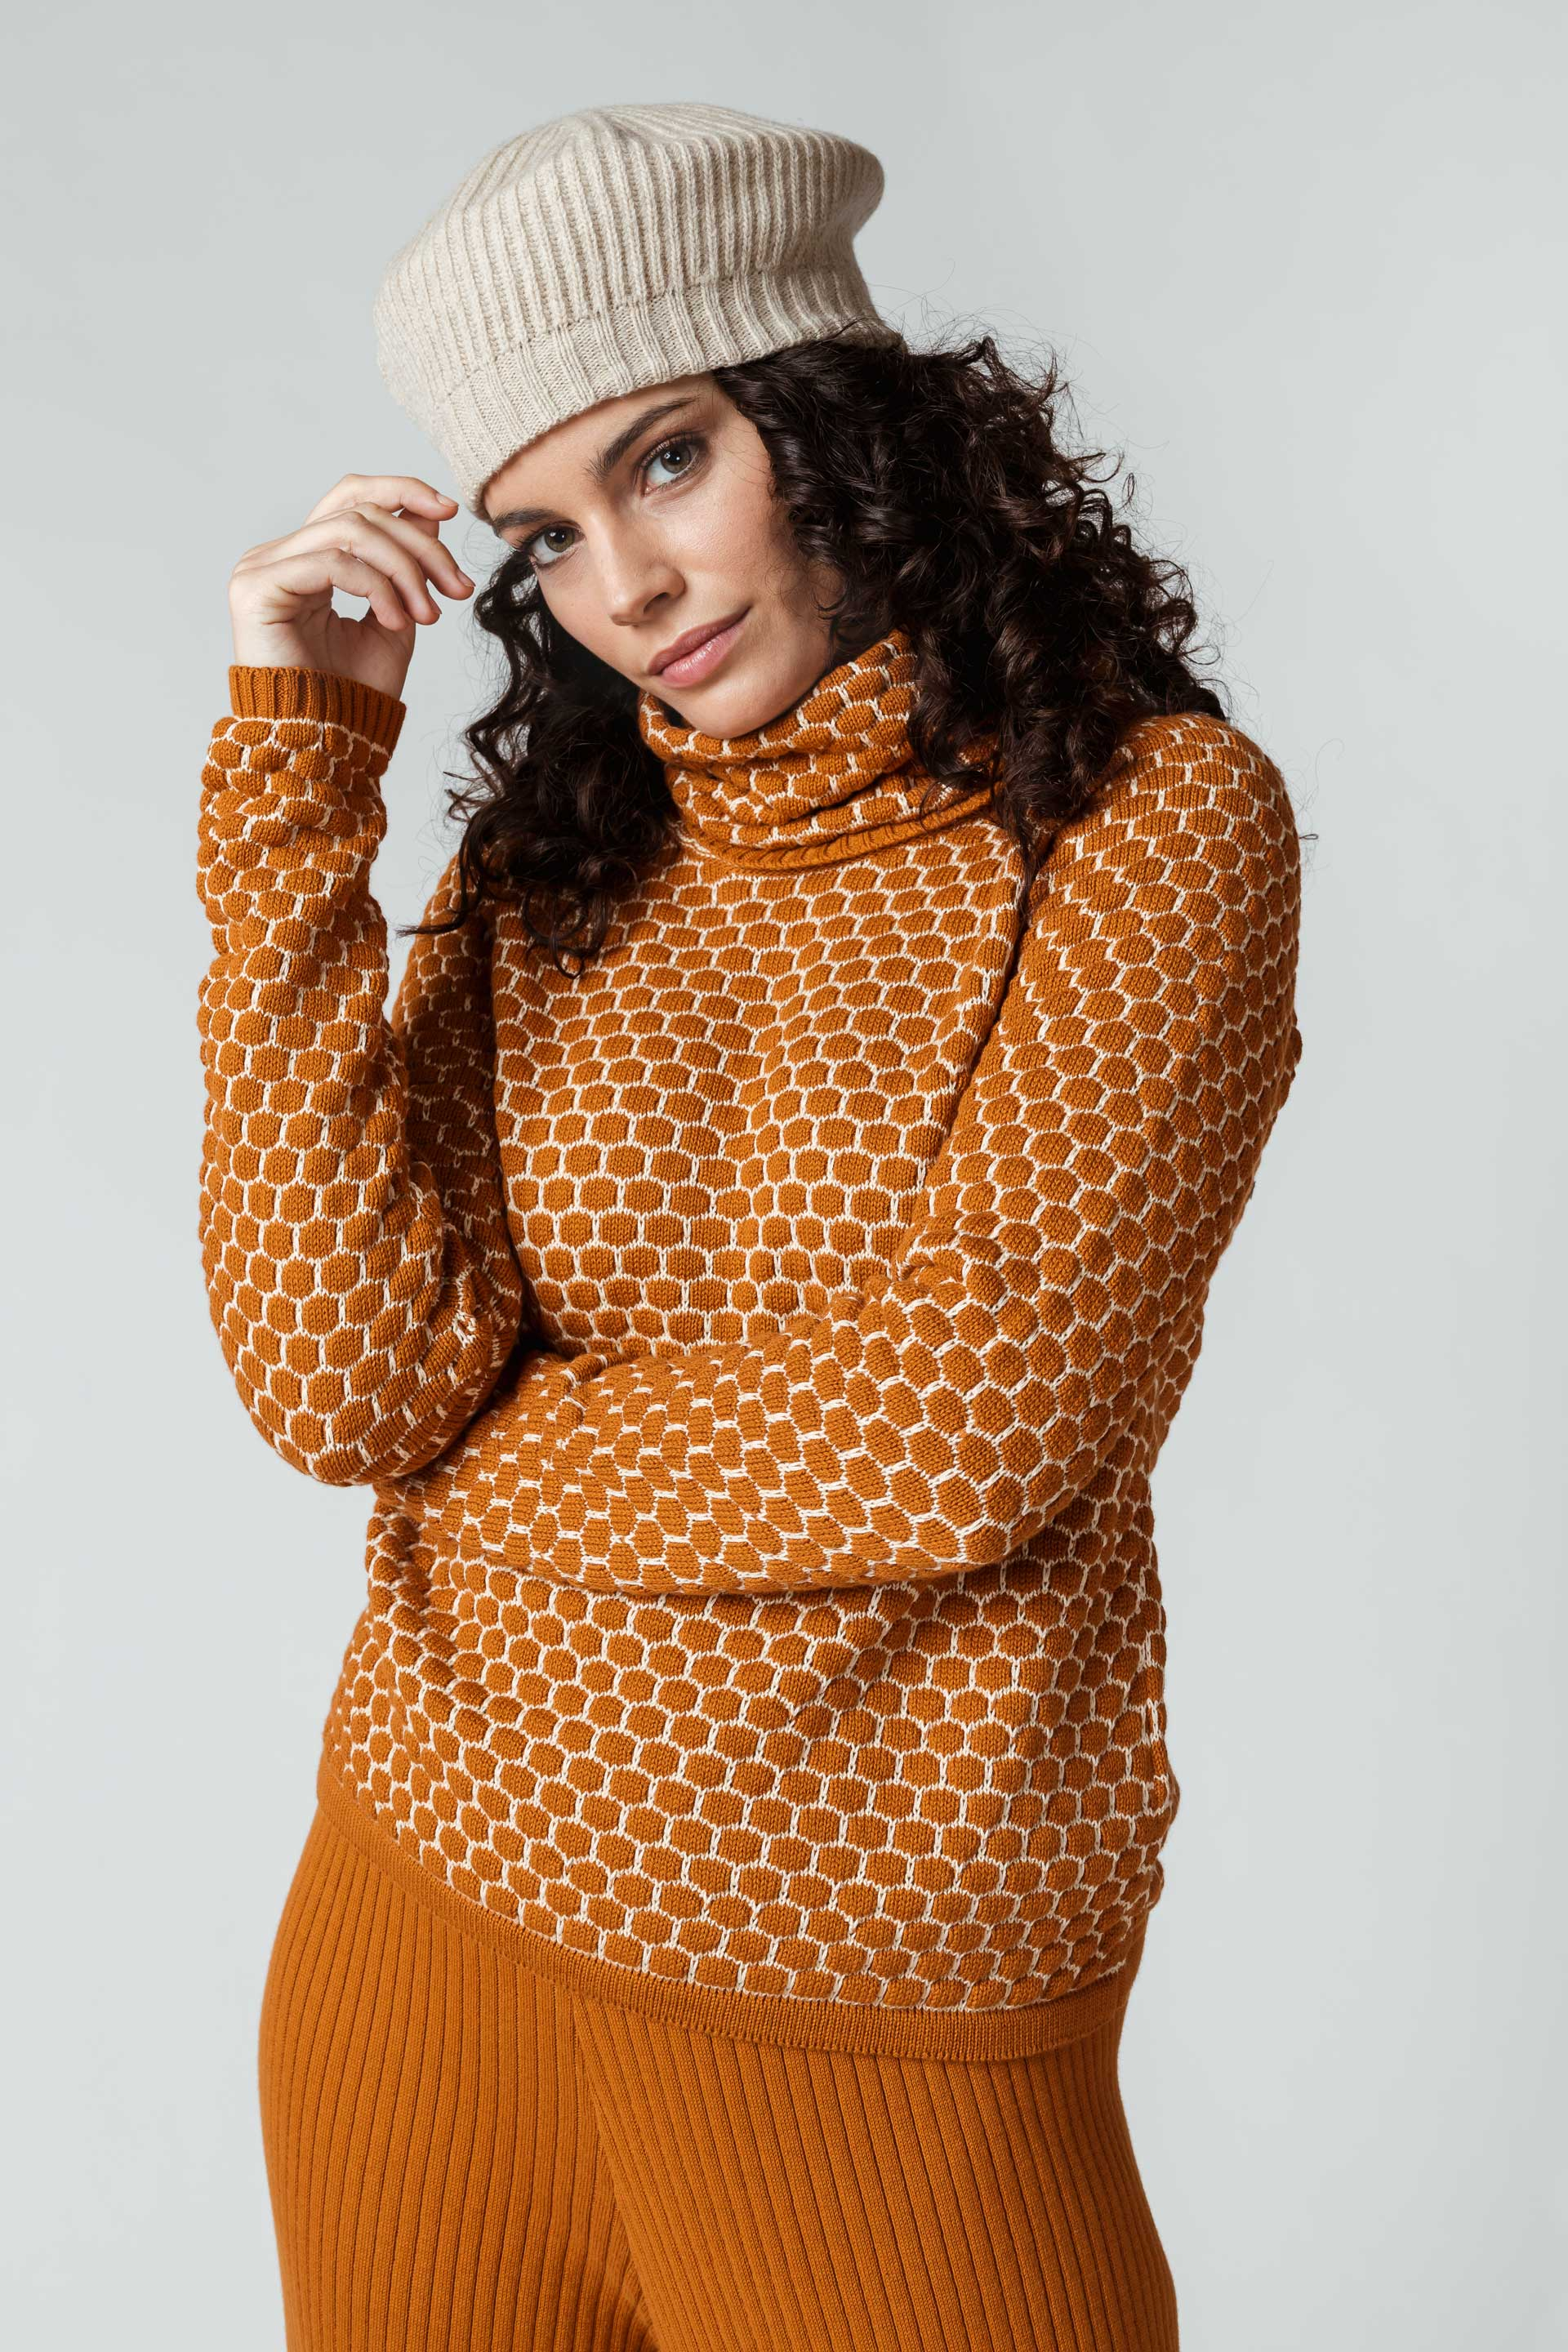 SKFK-IGORRE-SWEATER-Pullover-66-roasted-brown-and-cream